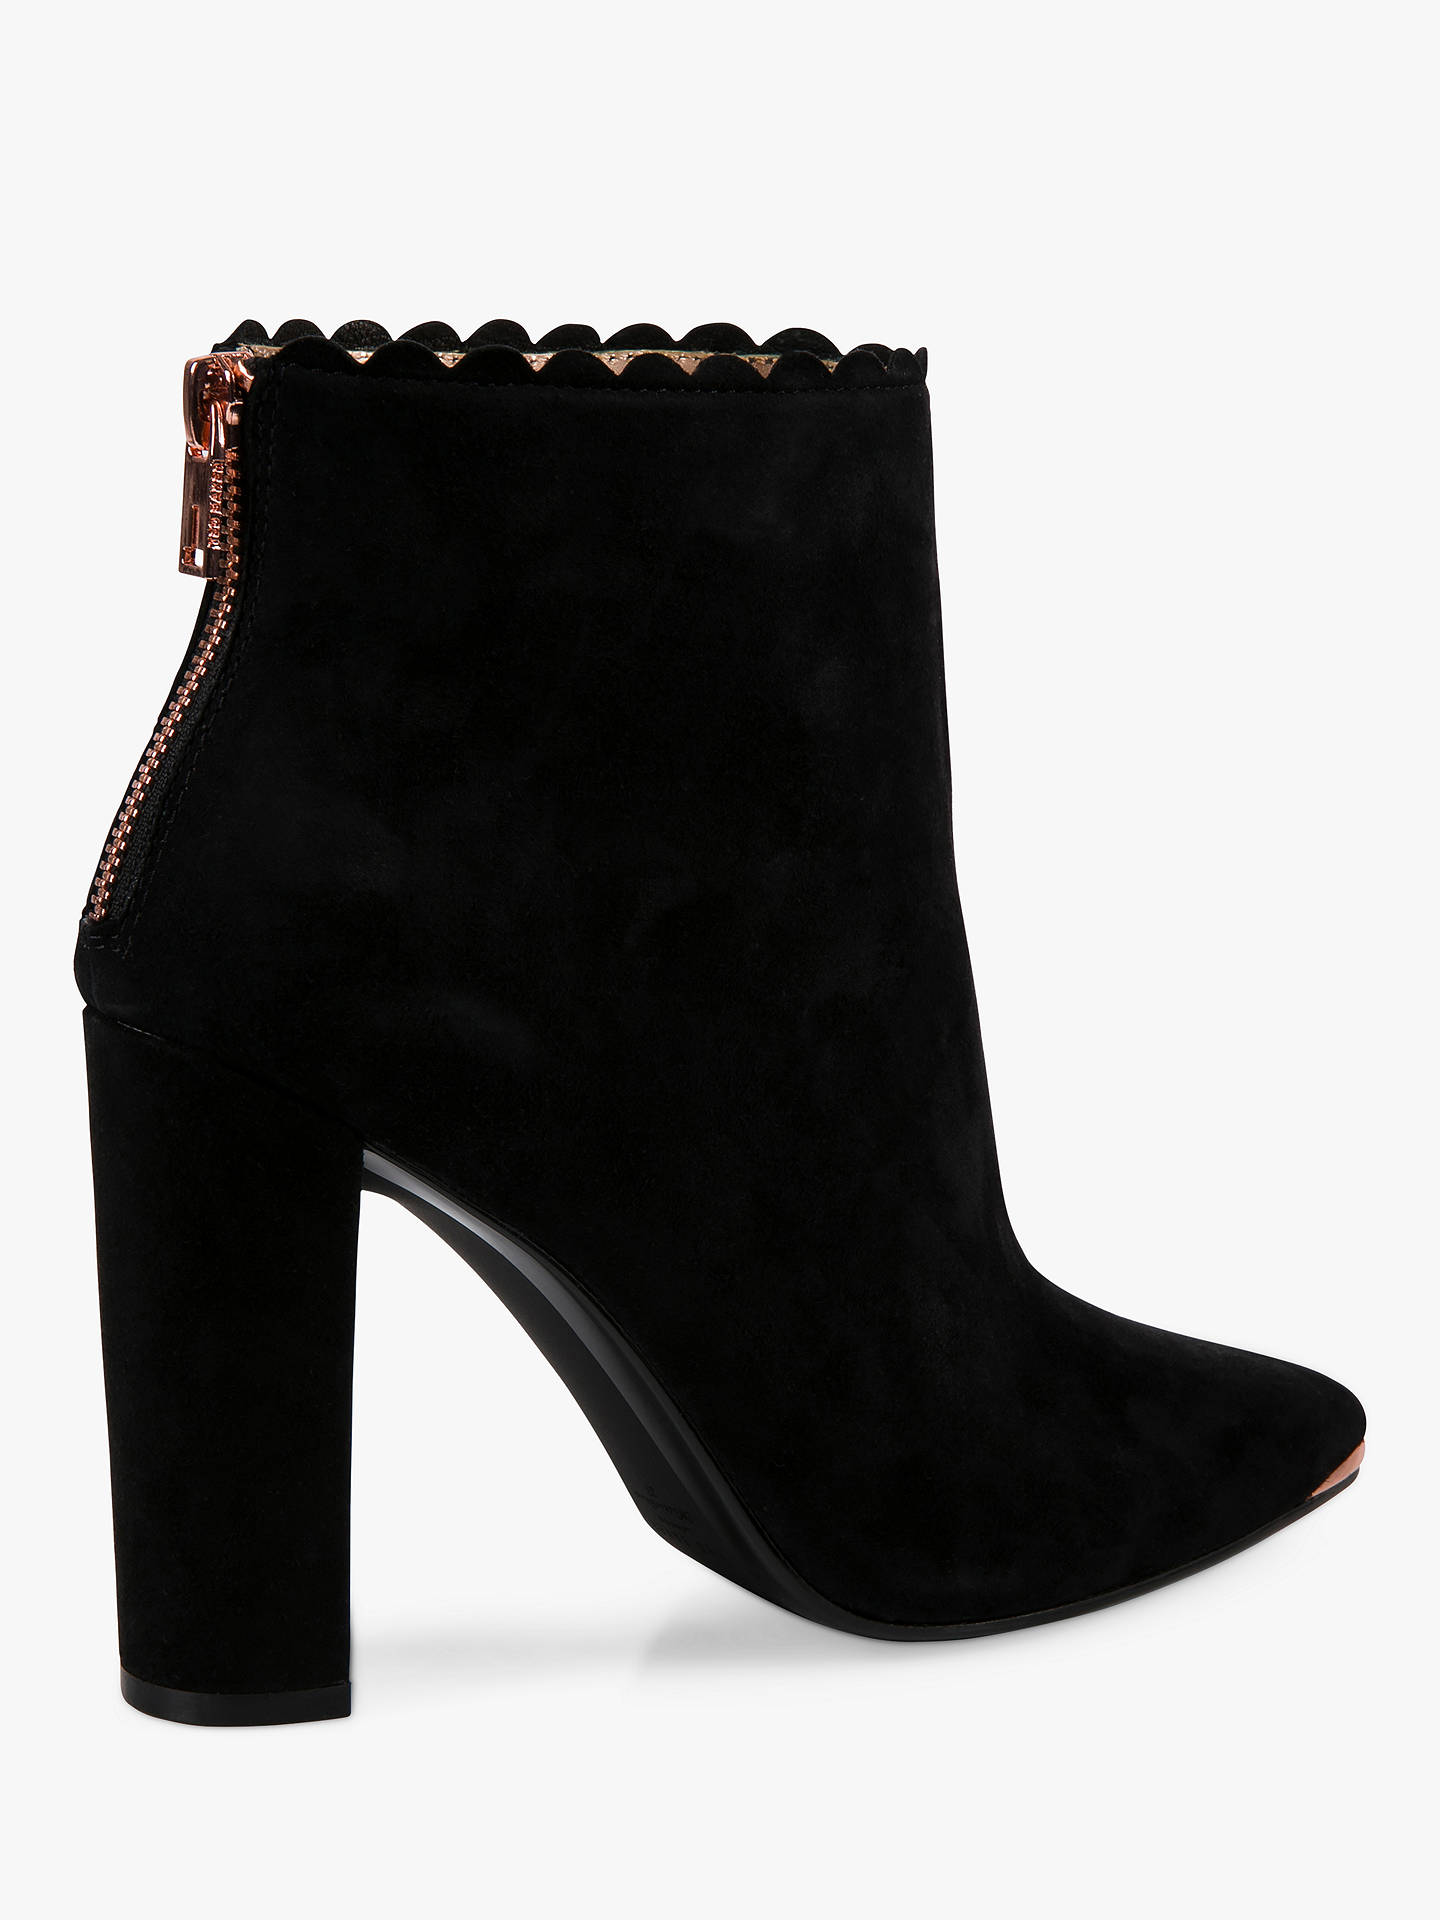 9a92b497890 ... Buy Ted Baker Ofelia High Block Heel Ankle Boots